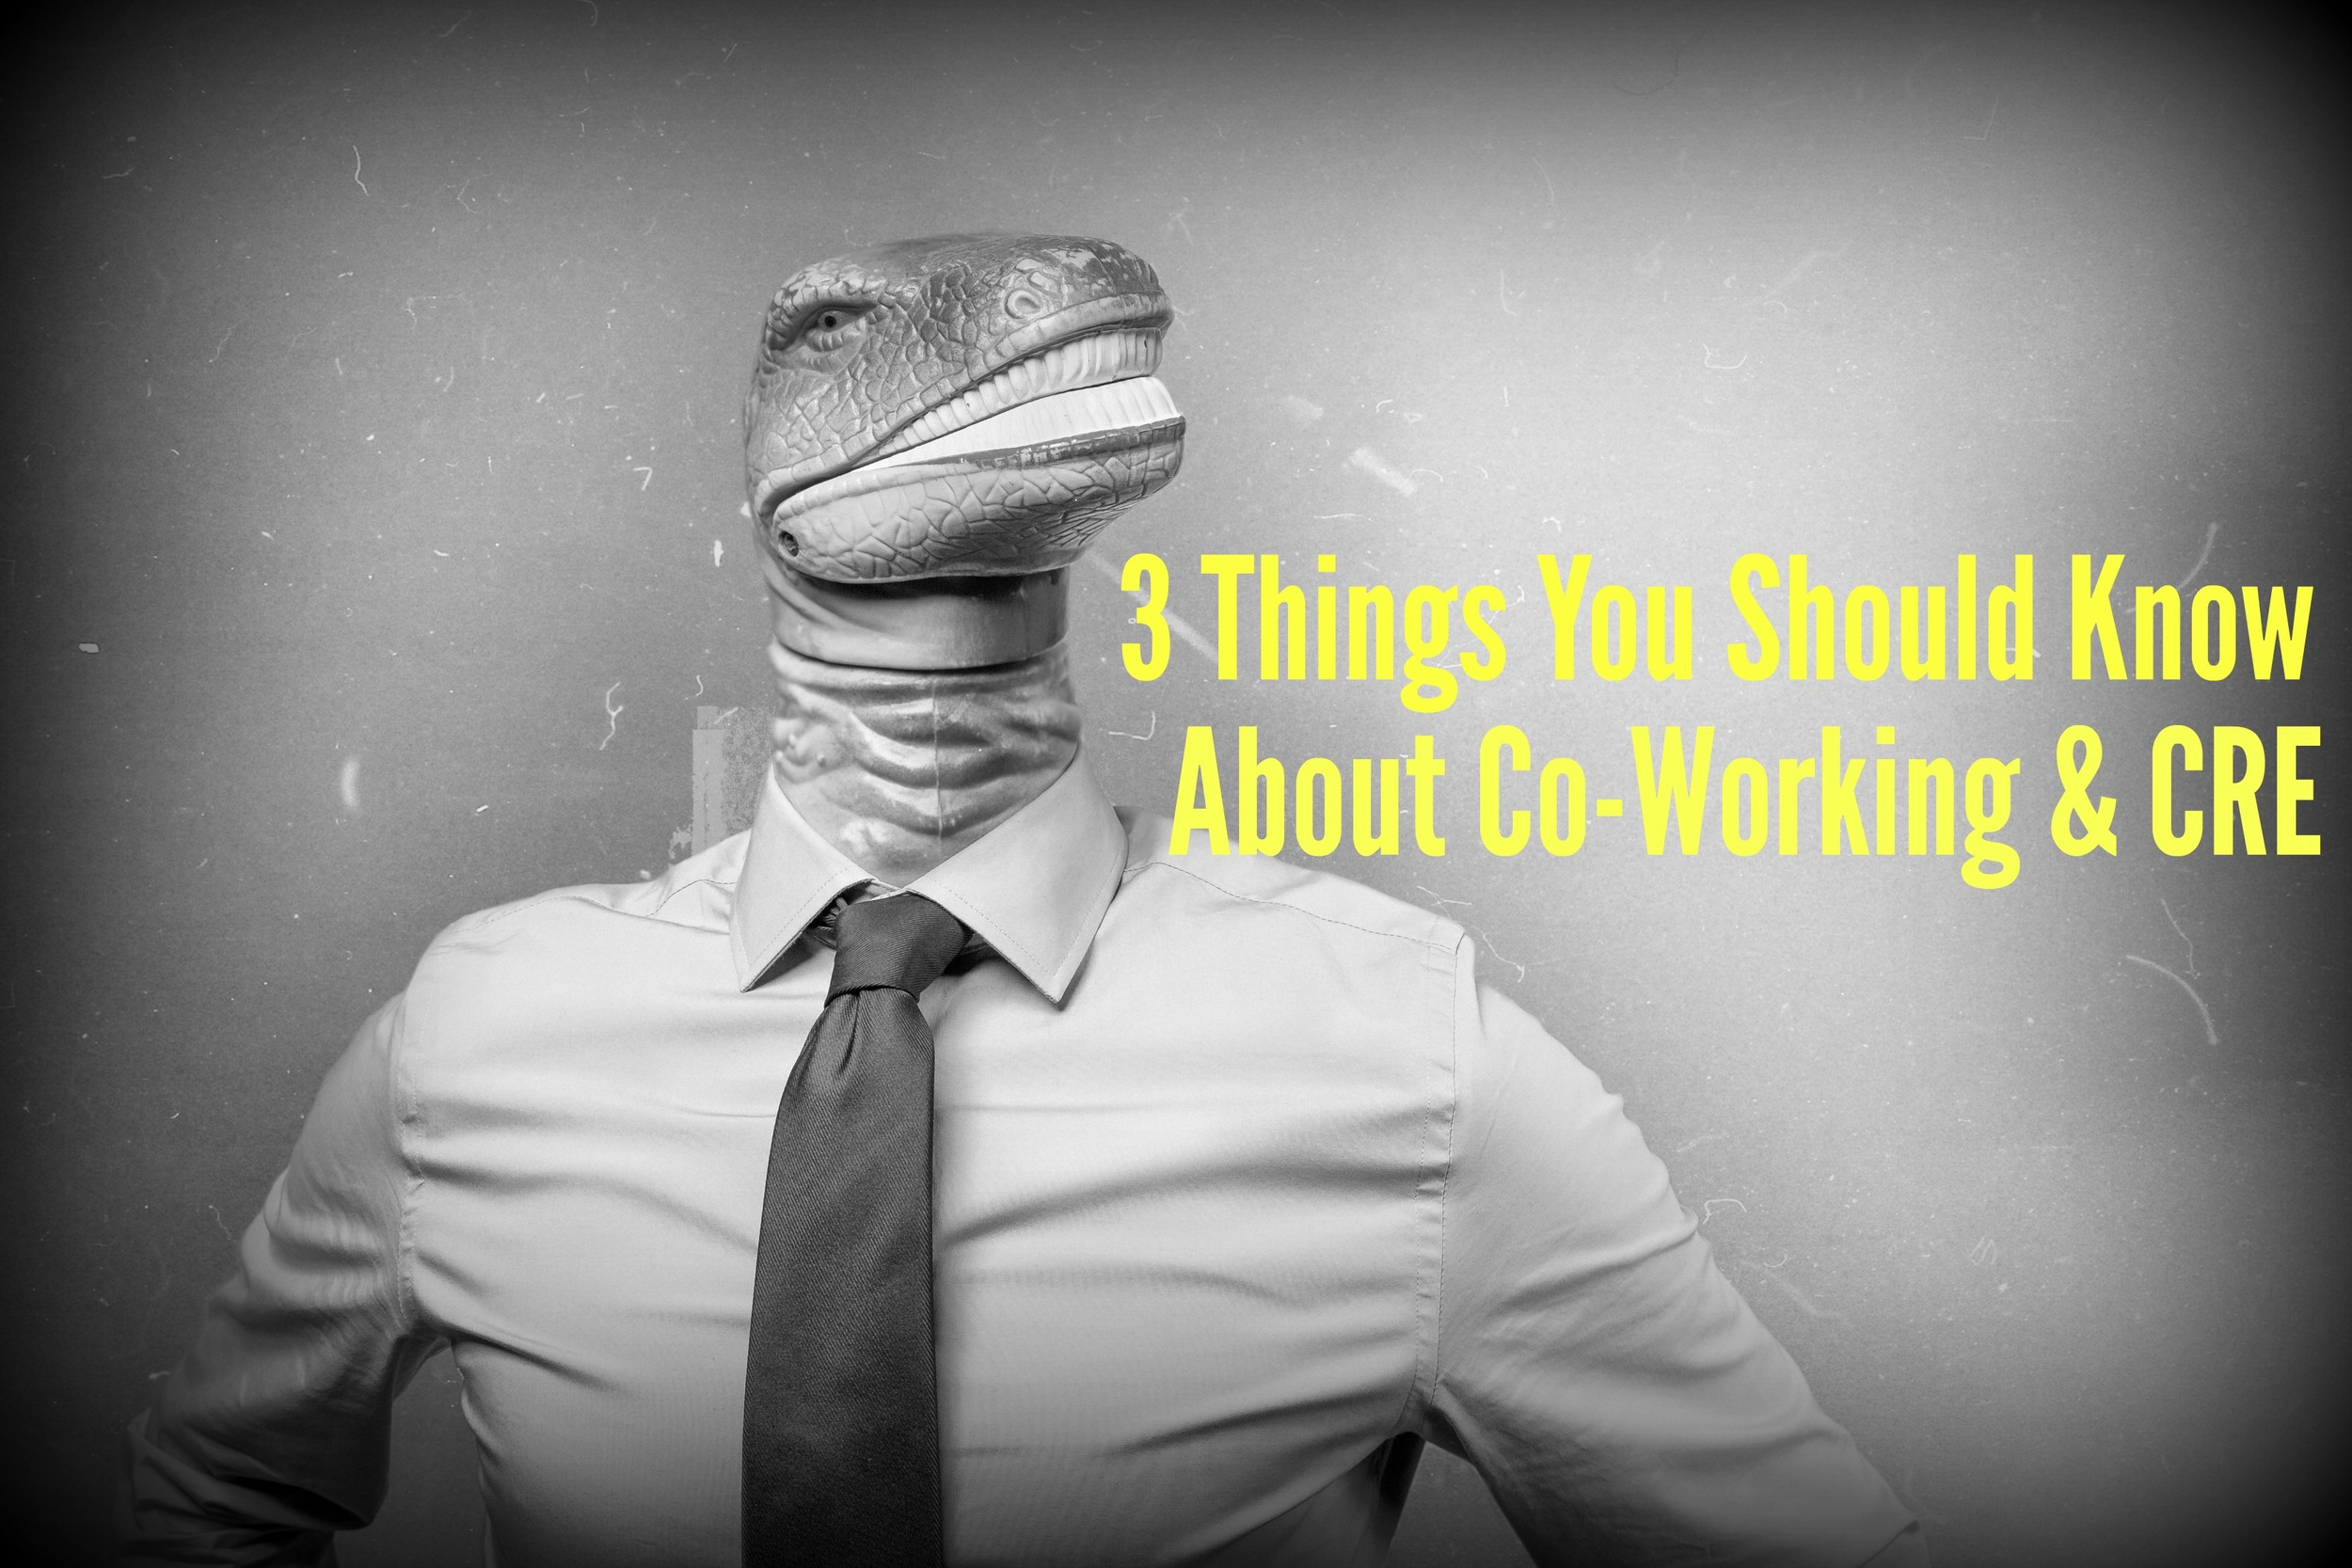 3-Things-You-Should-Know-About-Co-Working-and-CRE-.jpg